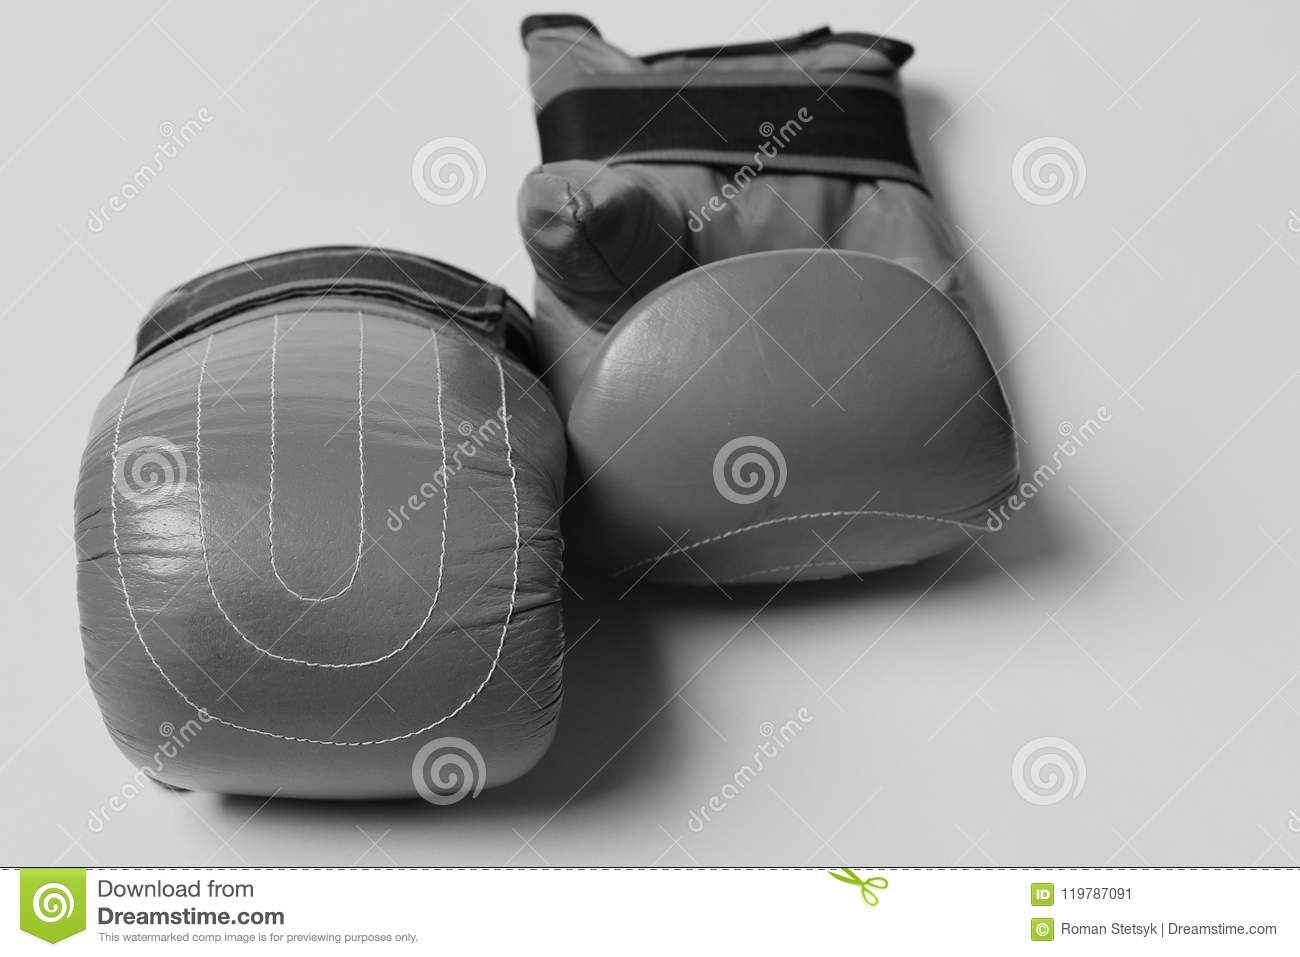 Combat and fight concept. Pair of boxing gloves lying next to each other.